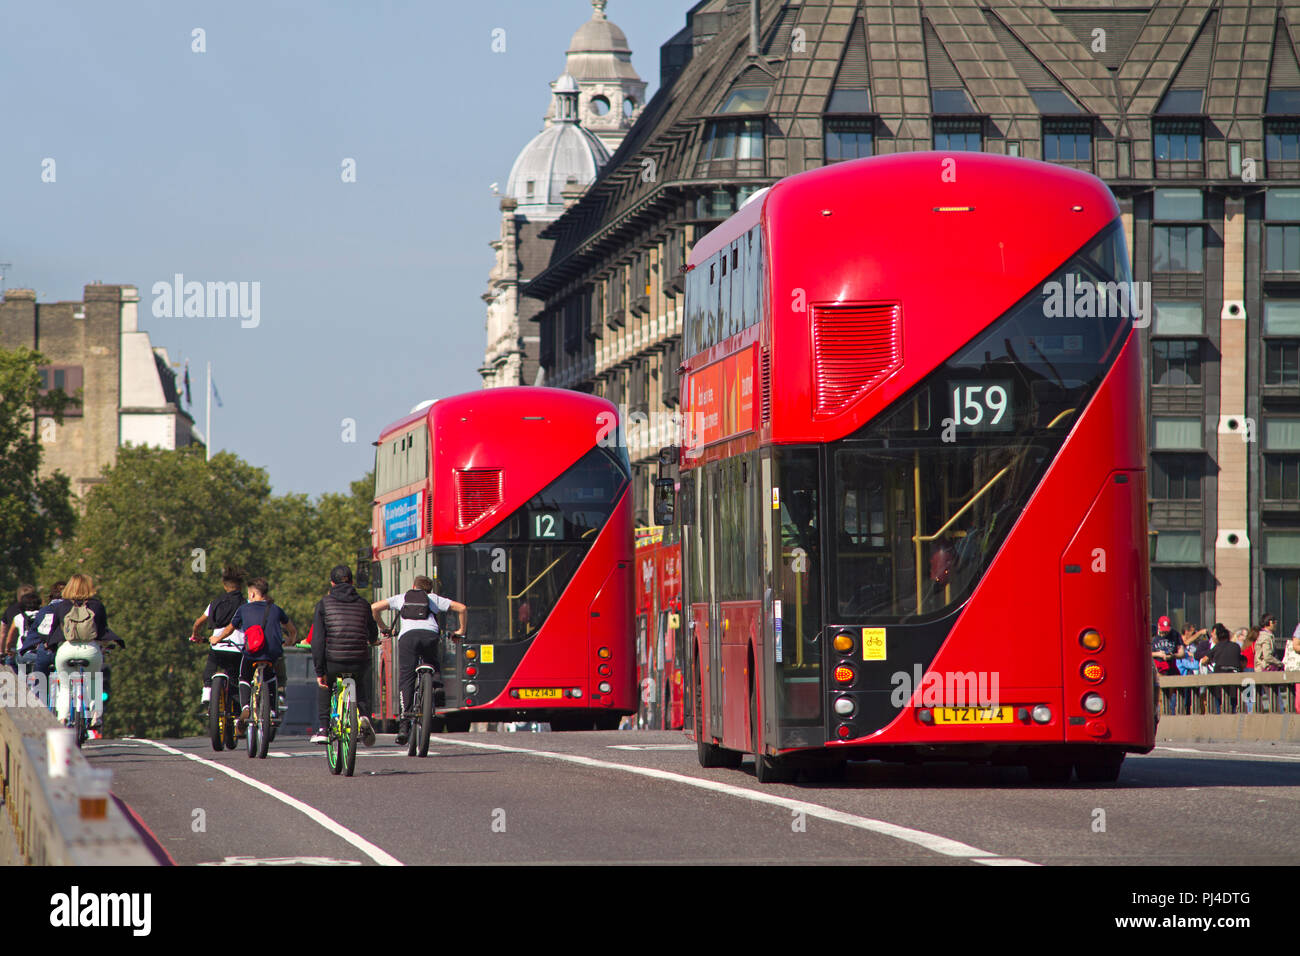 Rear view of a pair of New Routemaster red double decker London buses passing some cyclists on Westminster Bridge. - Stock Image